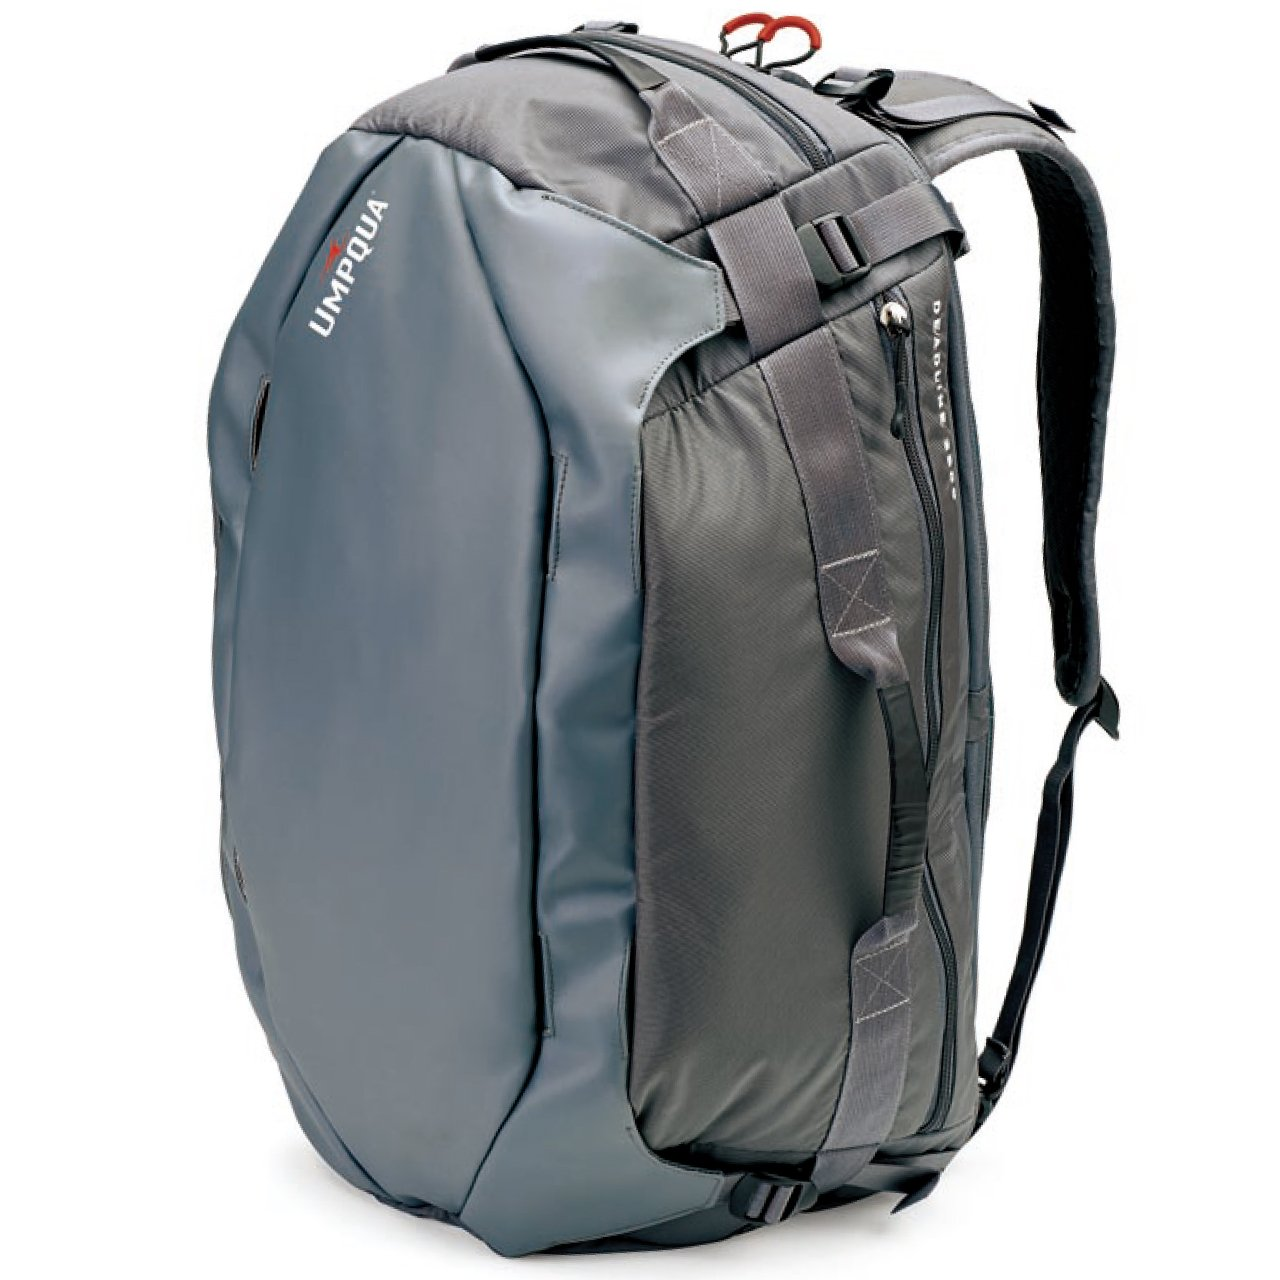 Umpqua Deadline 3500 Wet/Dry Duffel Bag - 3500cu in Slate Gray, One Size